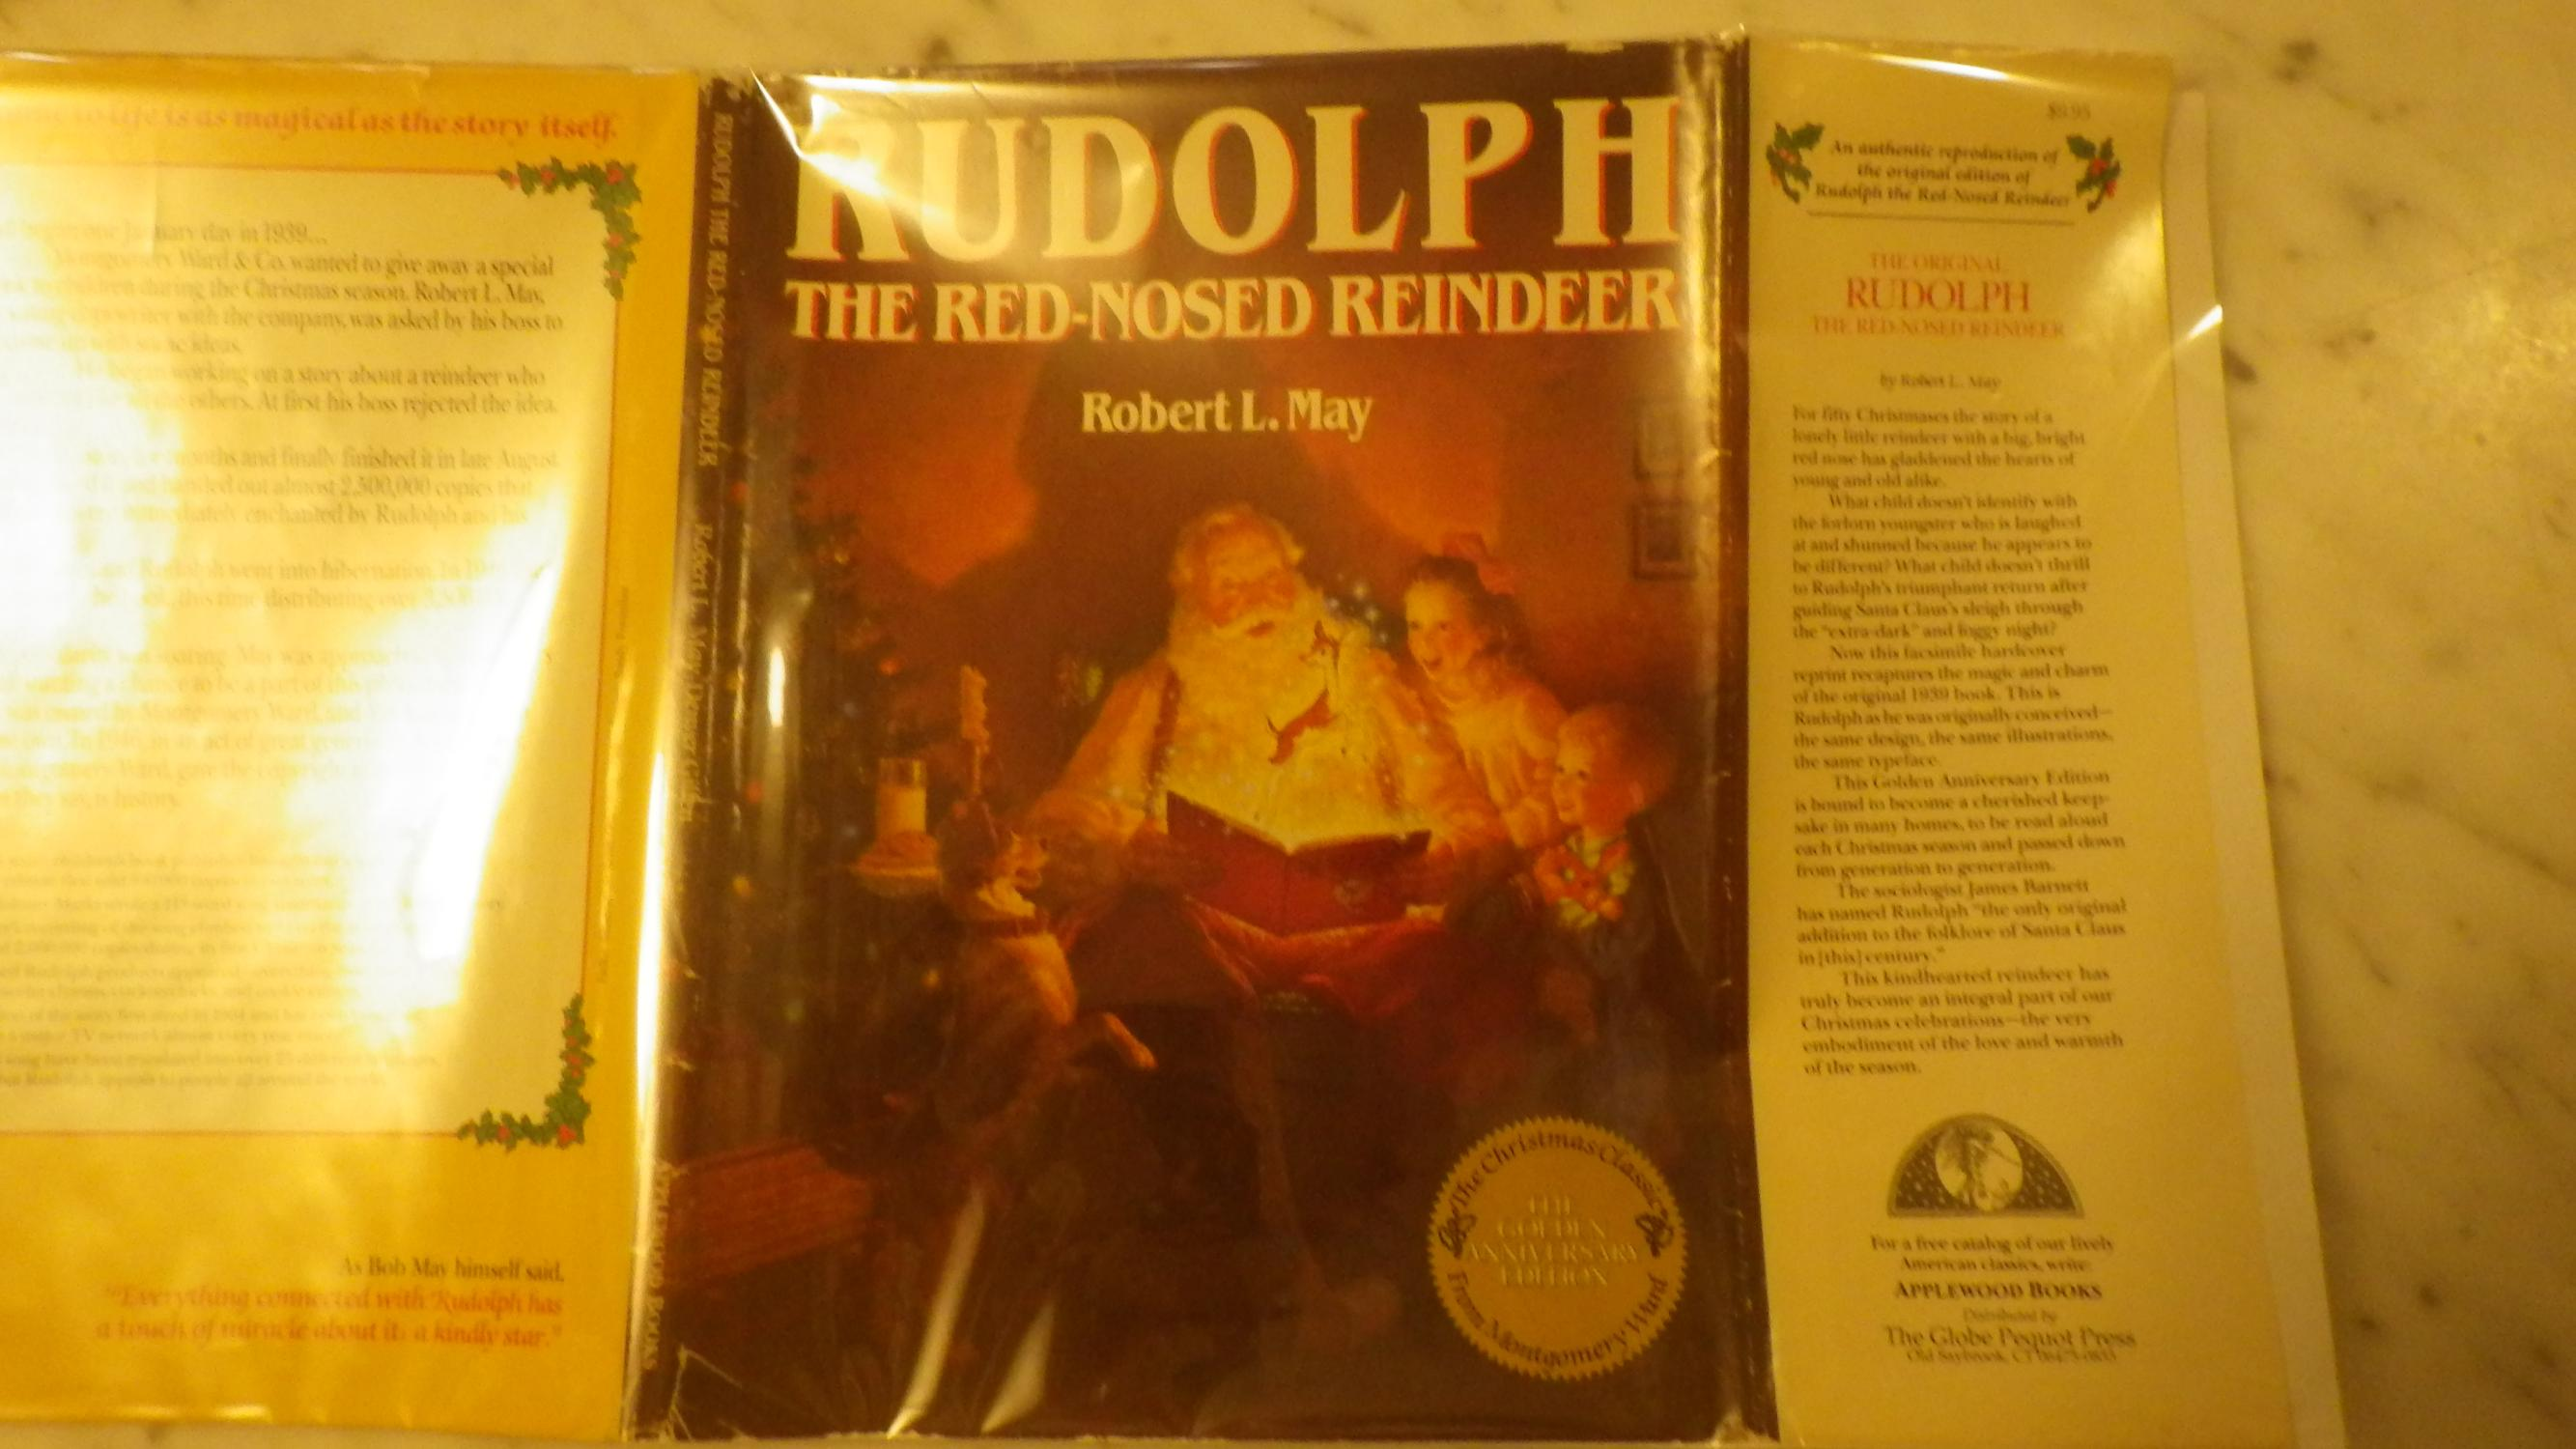 Rudolph the Red-Nosed Reindeer FACSIMILE of 1st Edition of 1939 with same Design, Illustrations & Typeface , GOLDEN Anniversary Edition, Robert L. Le